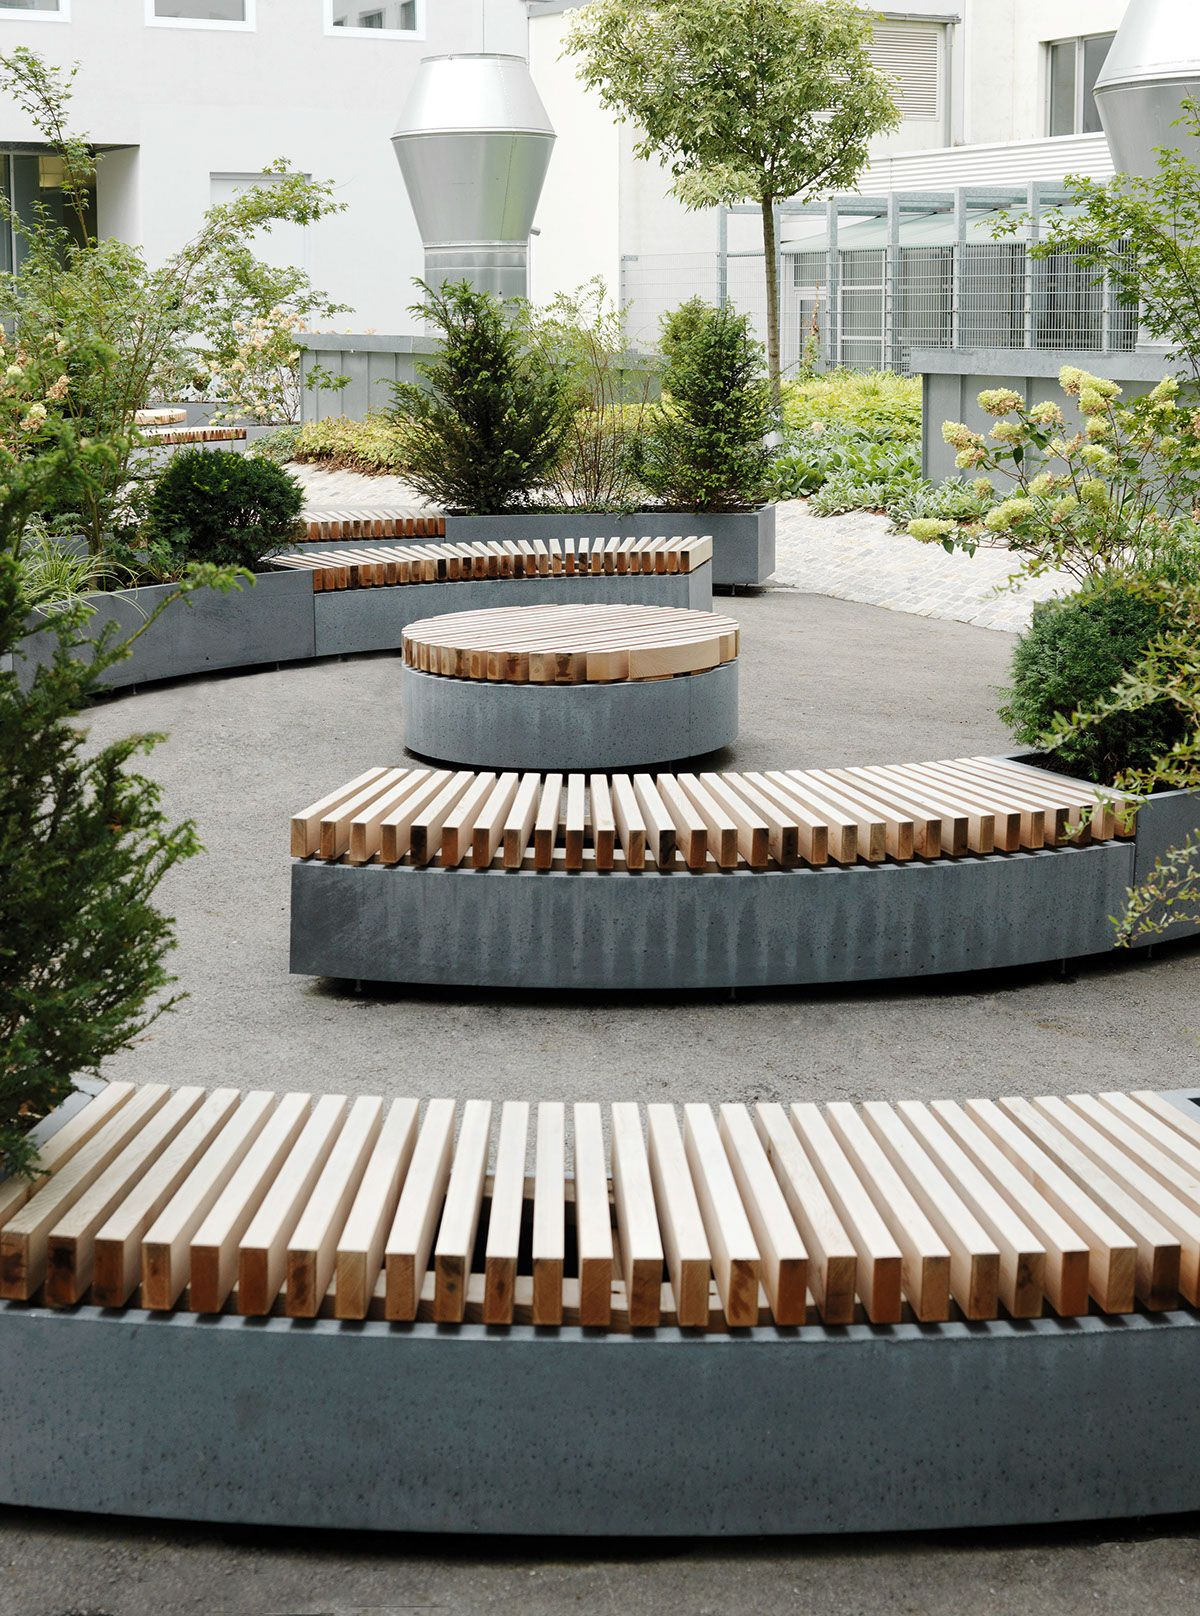 This seating surface at round platforms? outdoor furniture ... on landscape bench drawing, landscape tree designs, landscape arbor designs, landscape bench dimensions, landscape bridge designs, landscape bed designs, landscape wall designs, landscape bench details, landscape garden designs, landscape fence designs, landscape bench graphics, landscape art designs, landscape park designs,